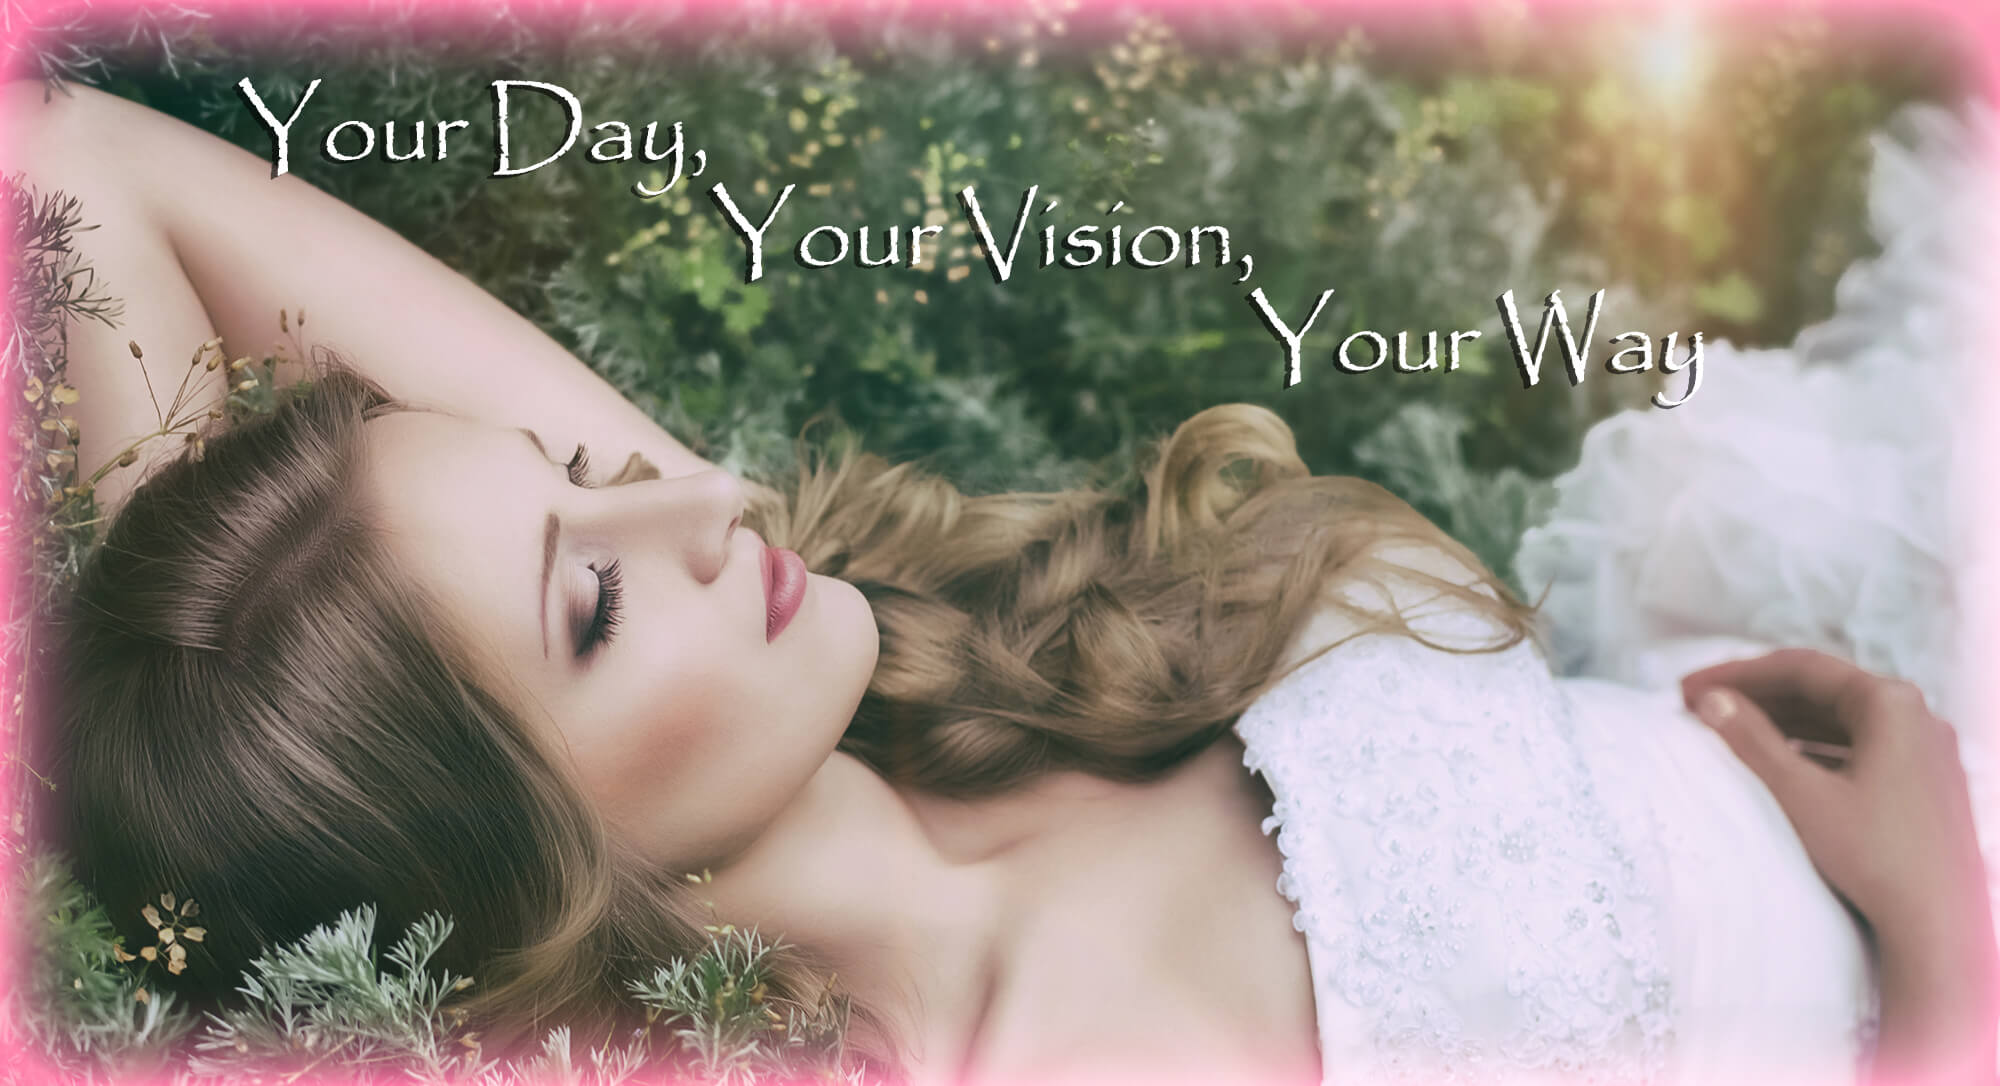 Your Day, Your Vision, Your Way